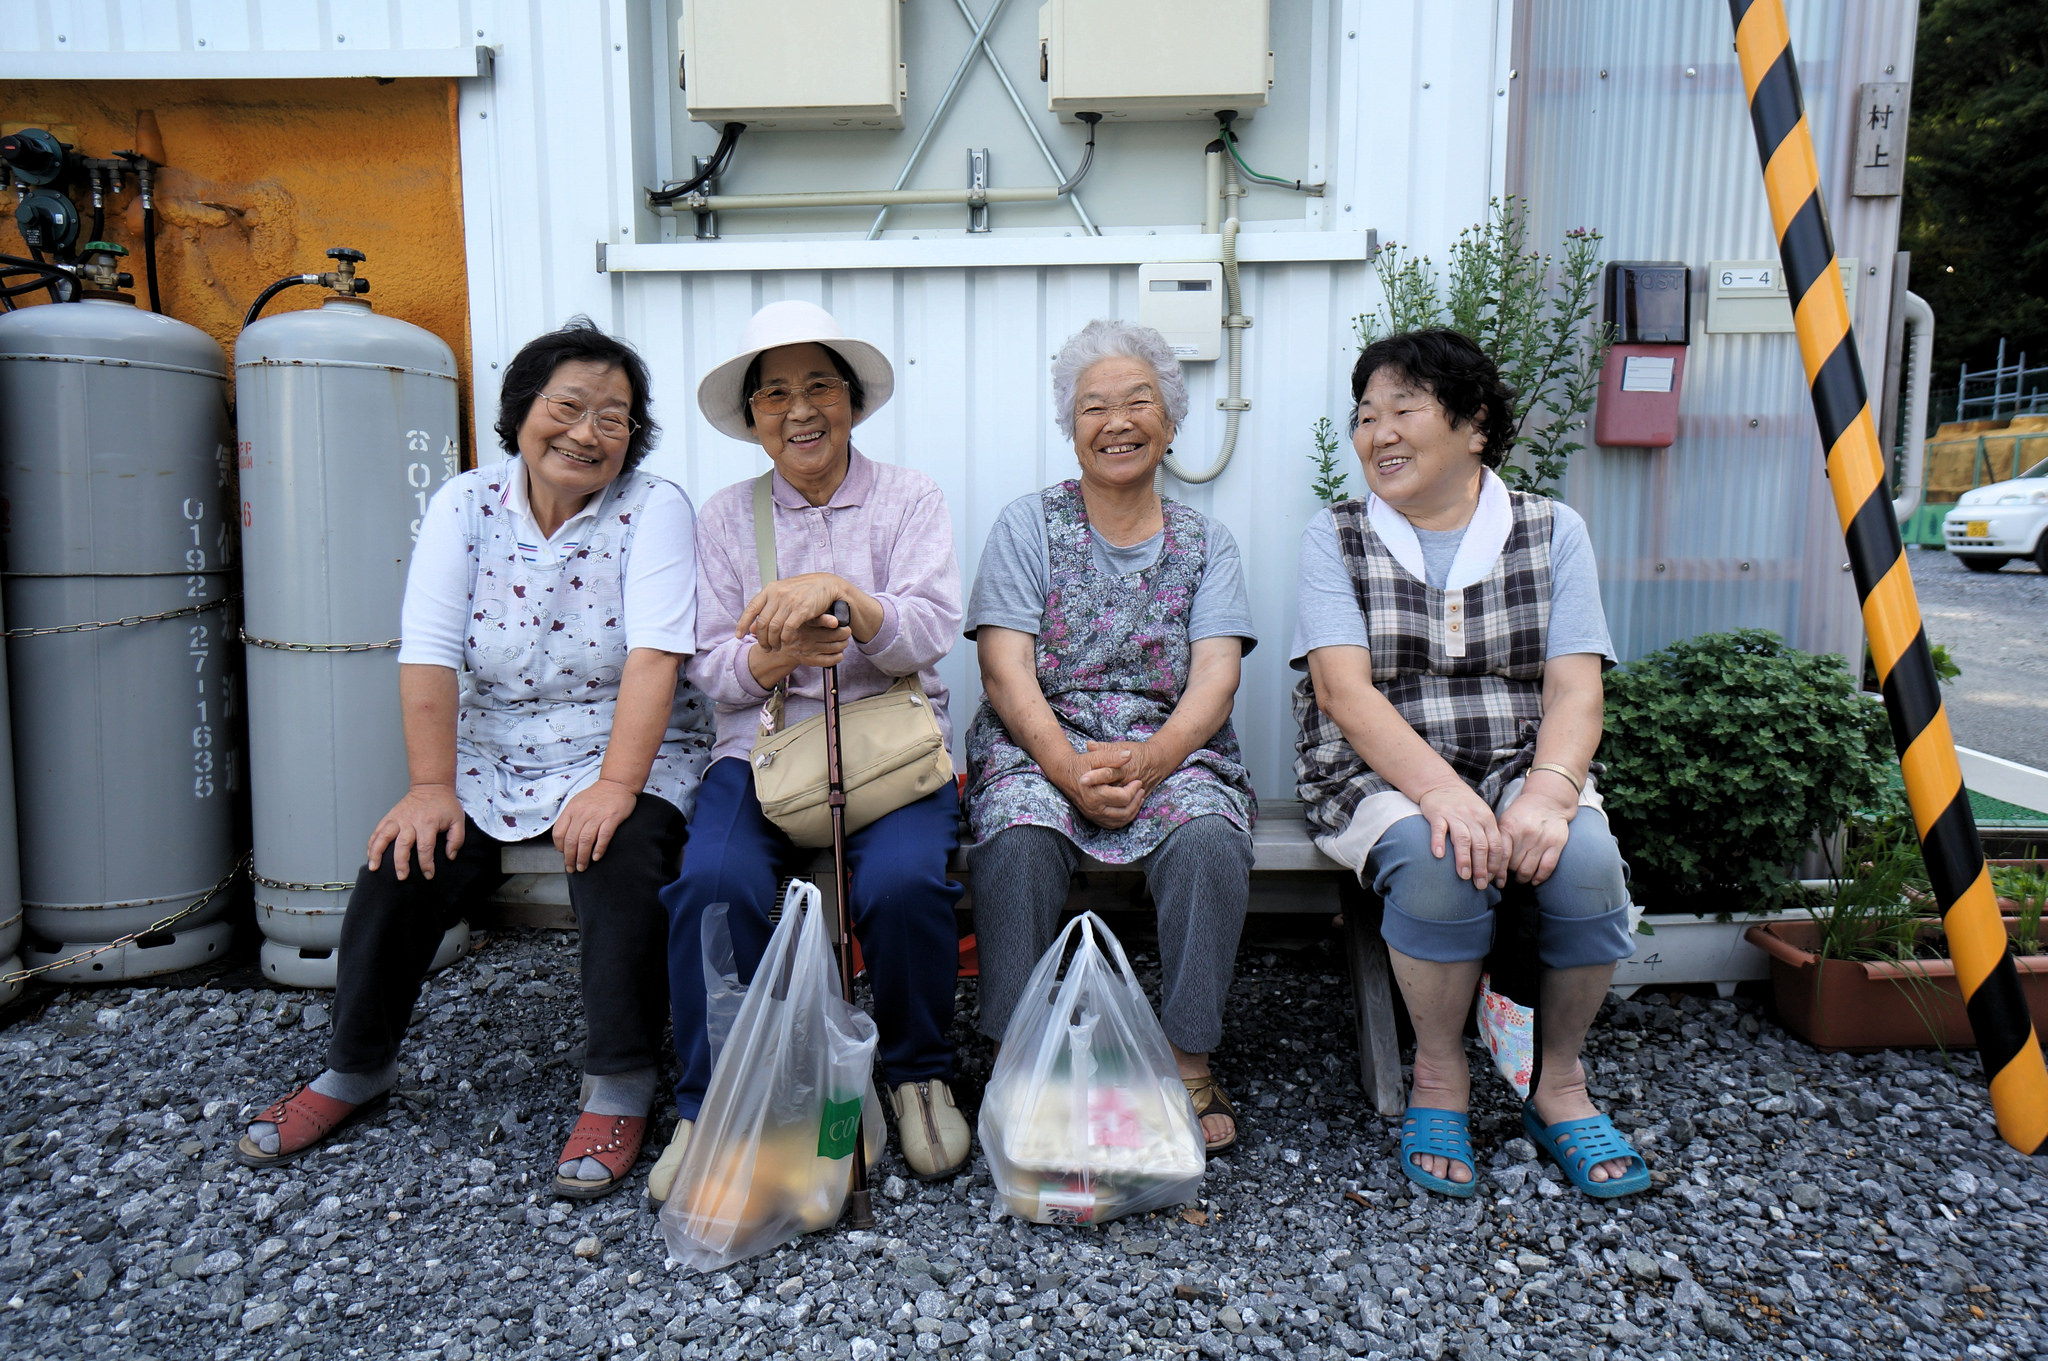 By embracing what it means to be human in Okinawa, you can live a long, fulfilled life, just like these ladies